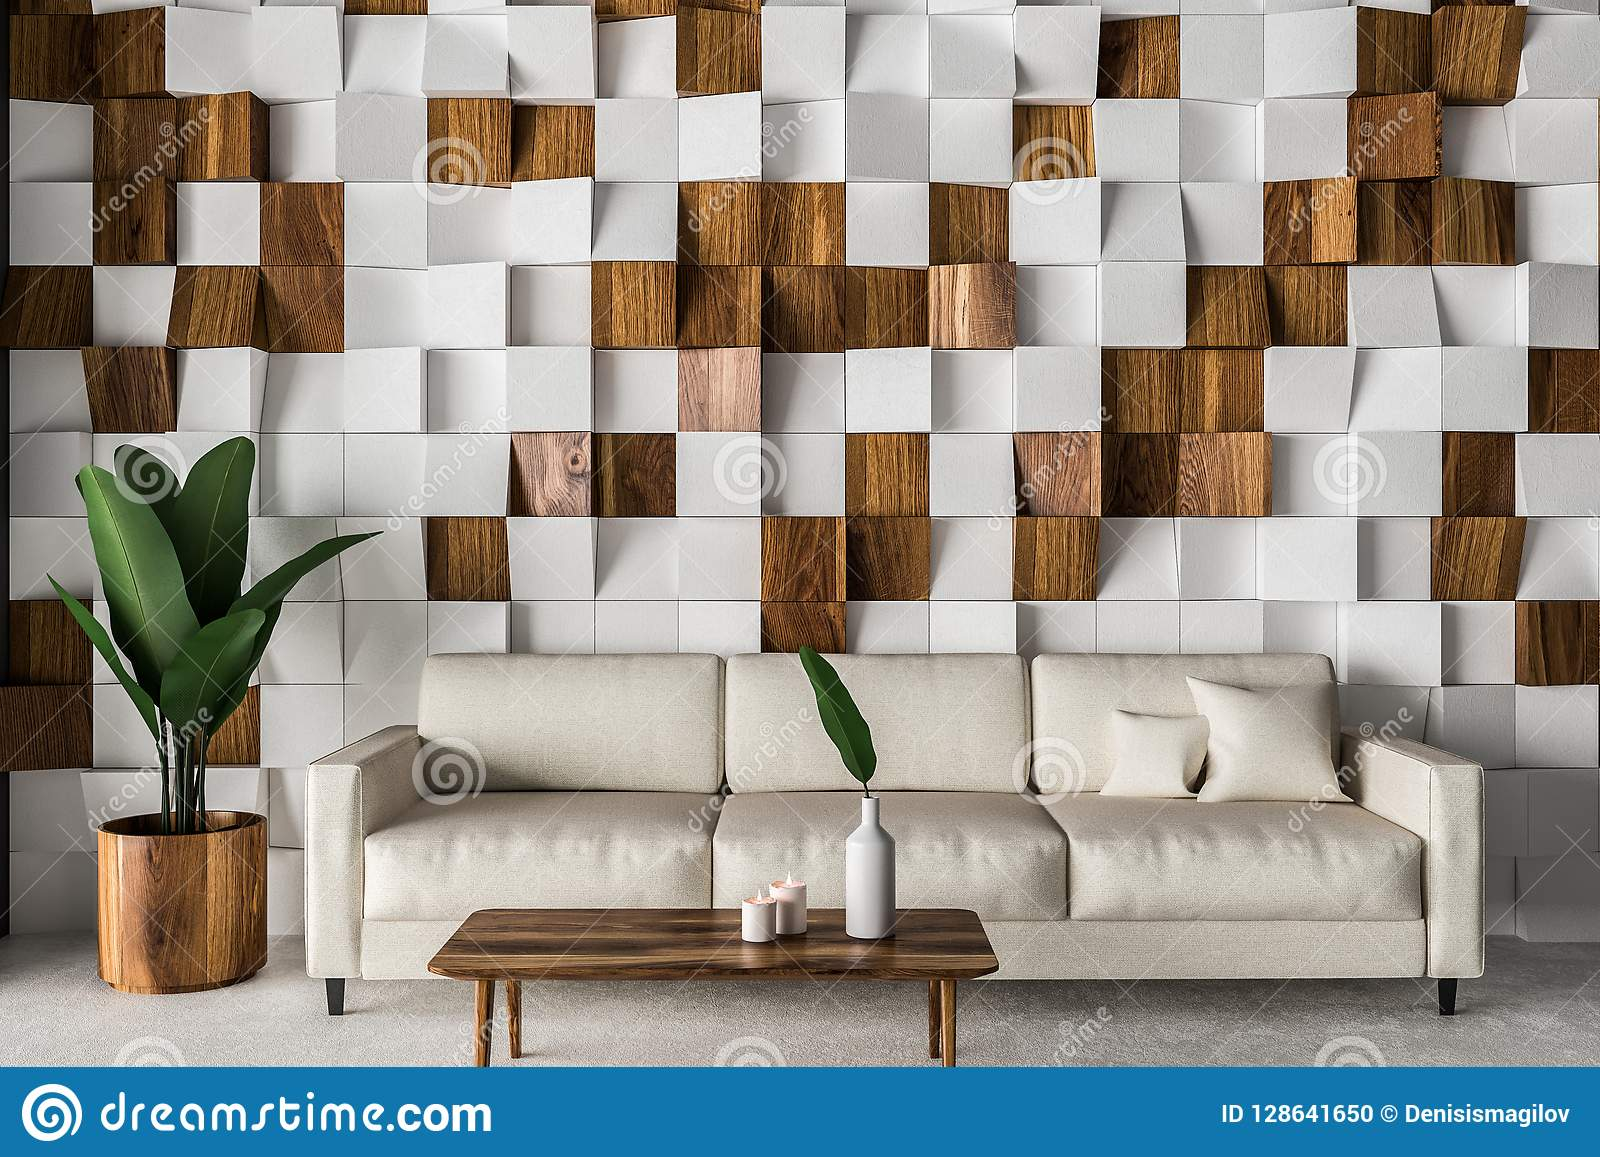 wooden tiles living room interior white sofa tiled wall concrete floor coffee table d rendering image